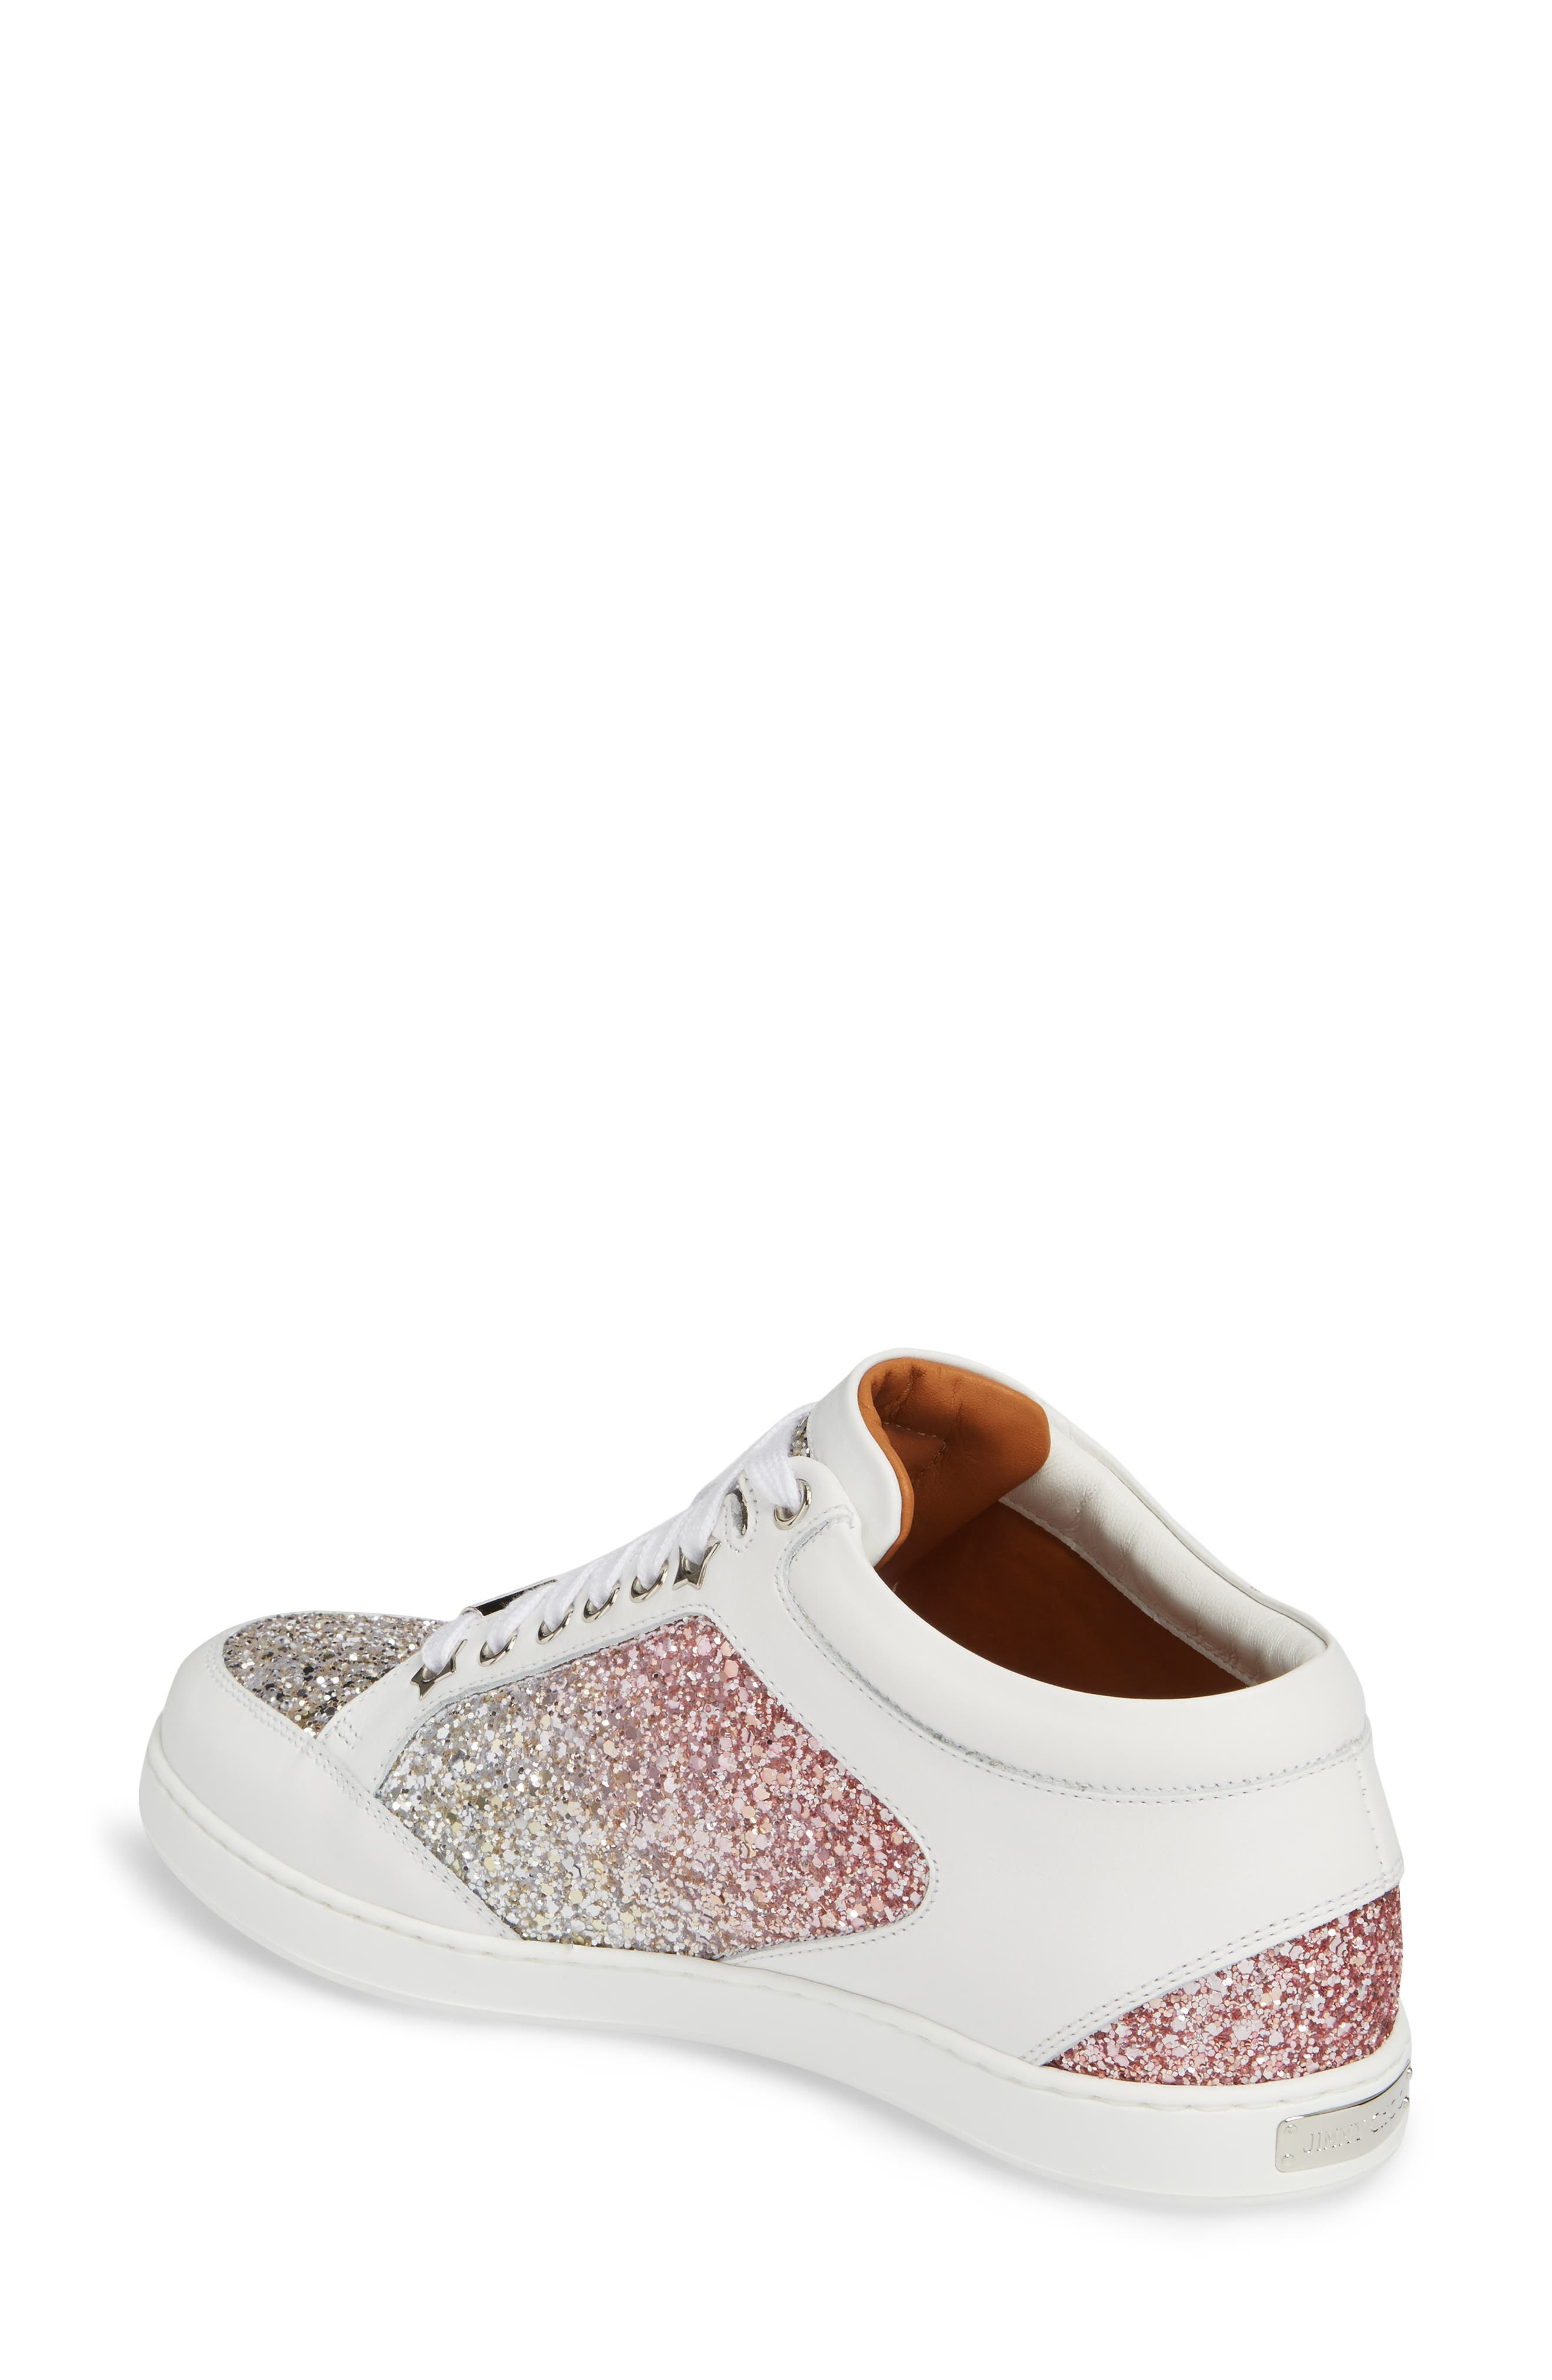 JIMMY CHOO,                             Miami Low Top Sneaker,                             Alternate thumbnail 2, color,                             650